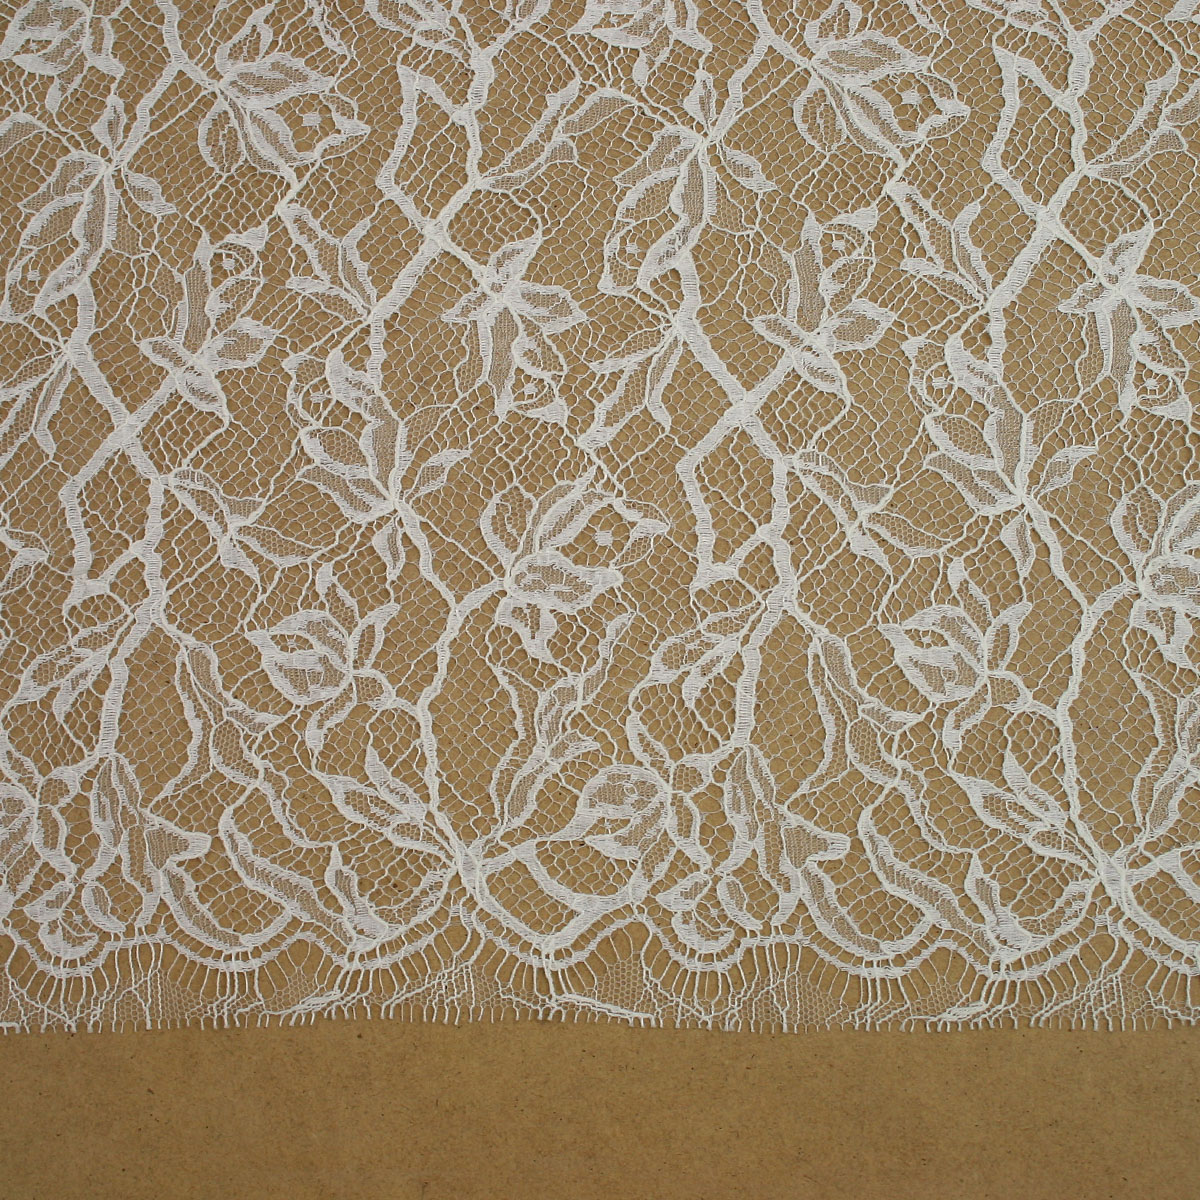 Ecru/Cream Chantilly Lace